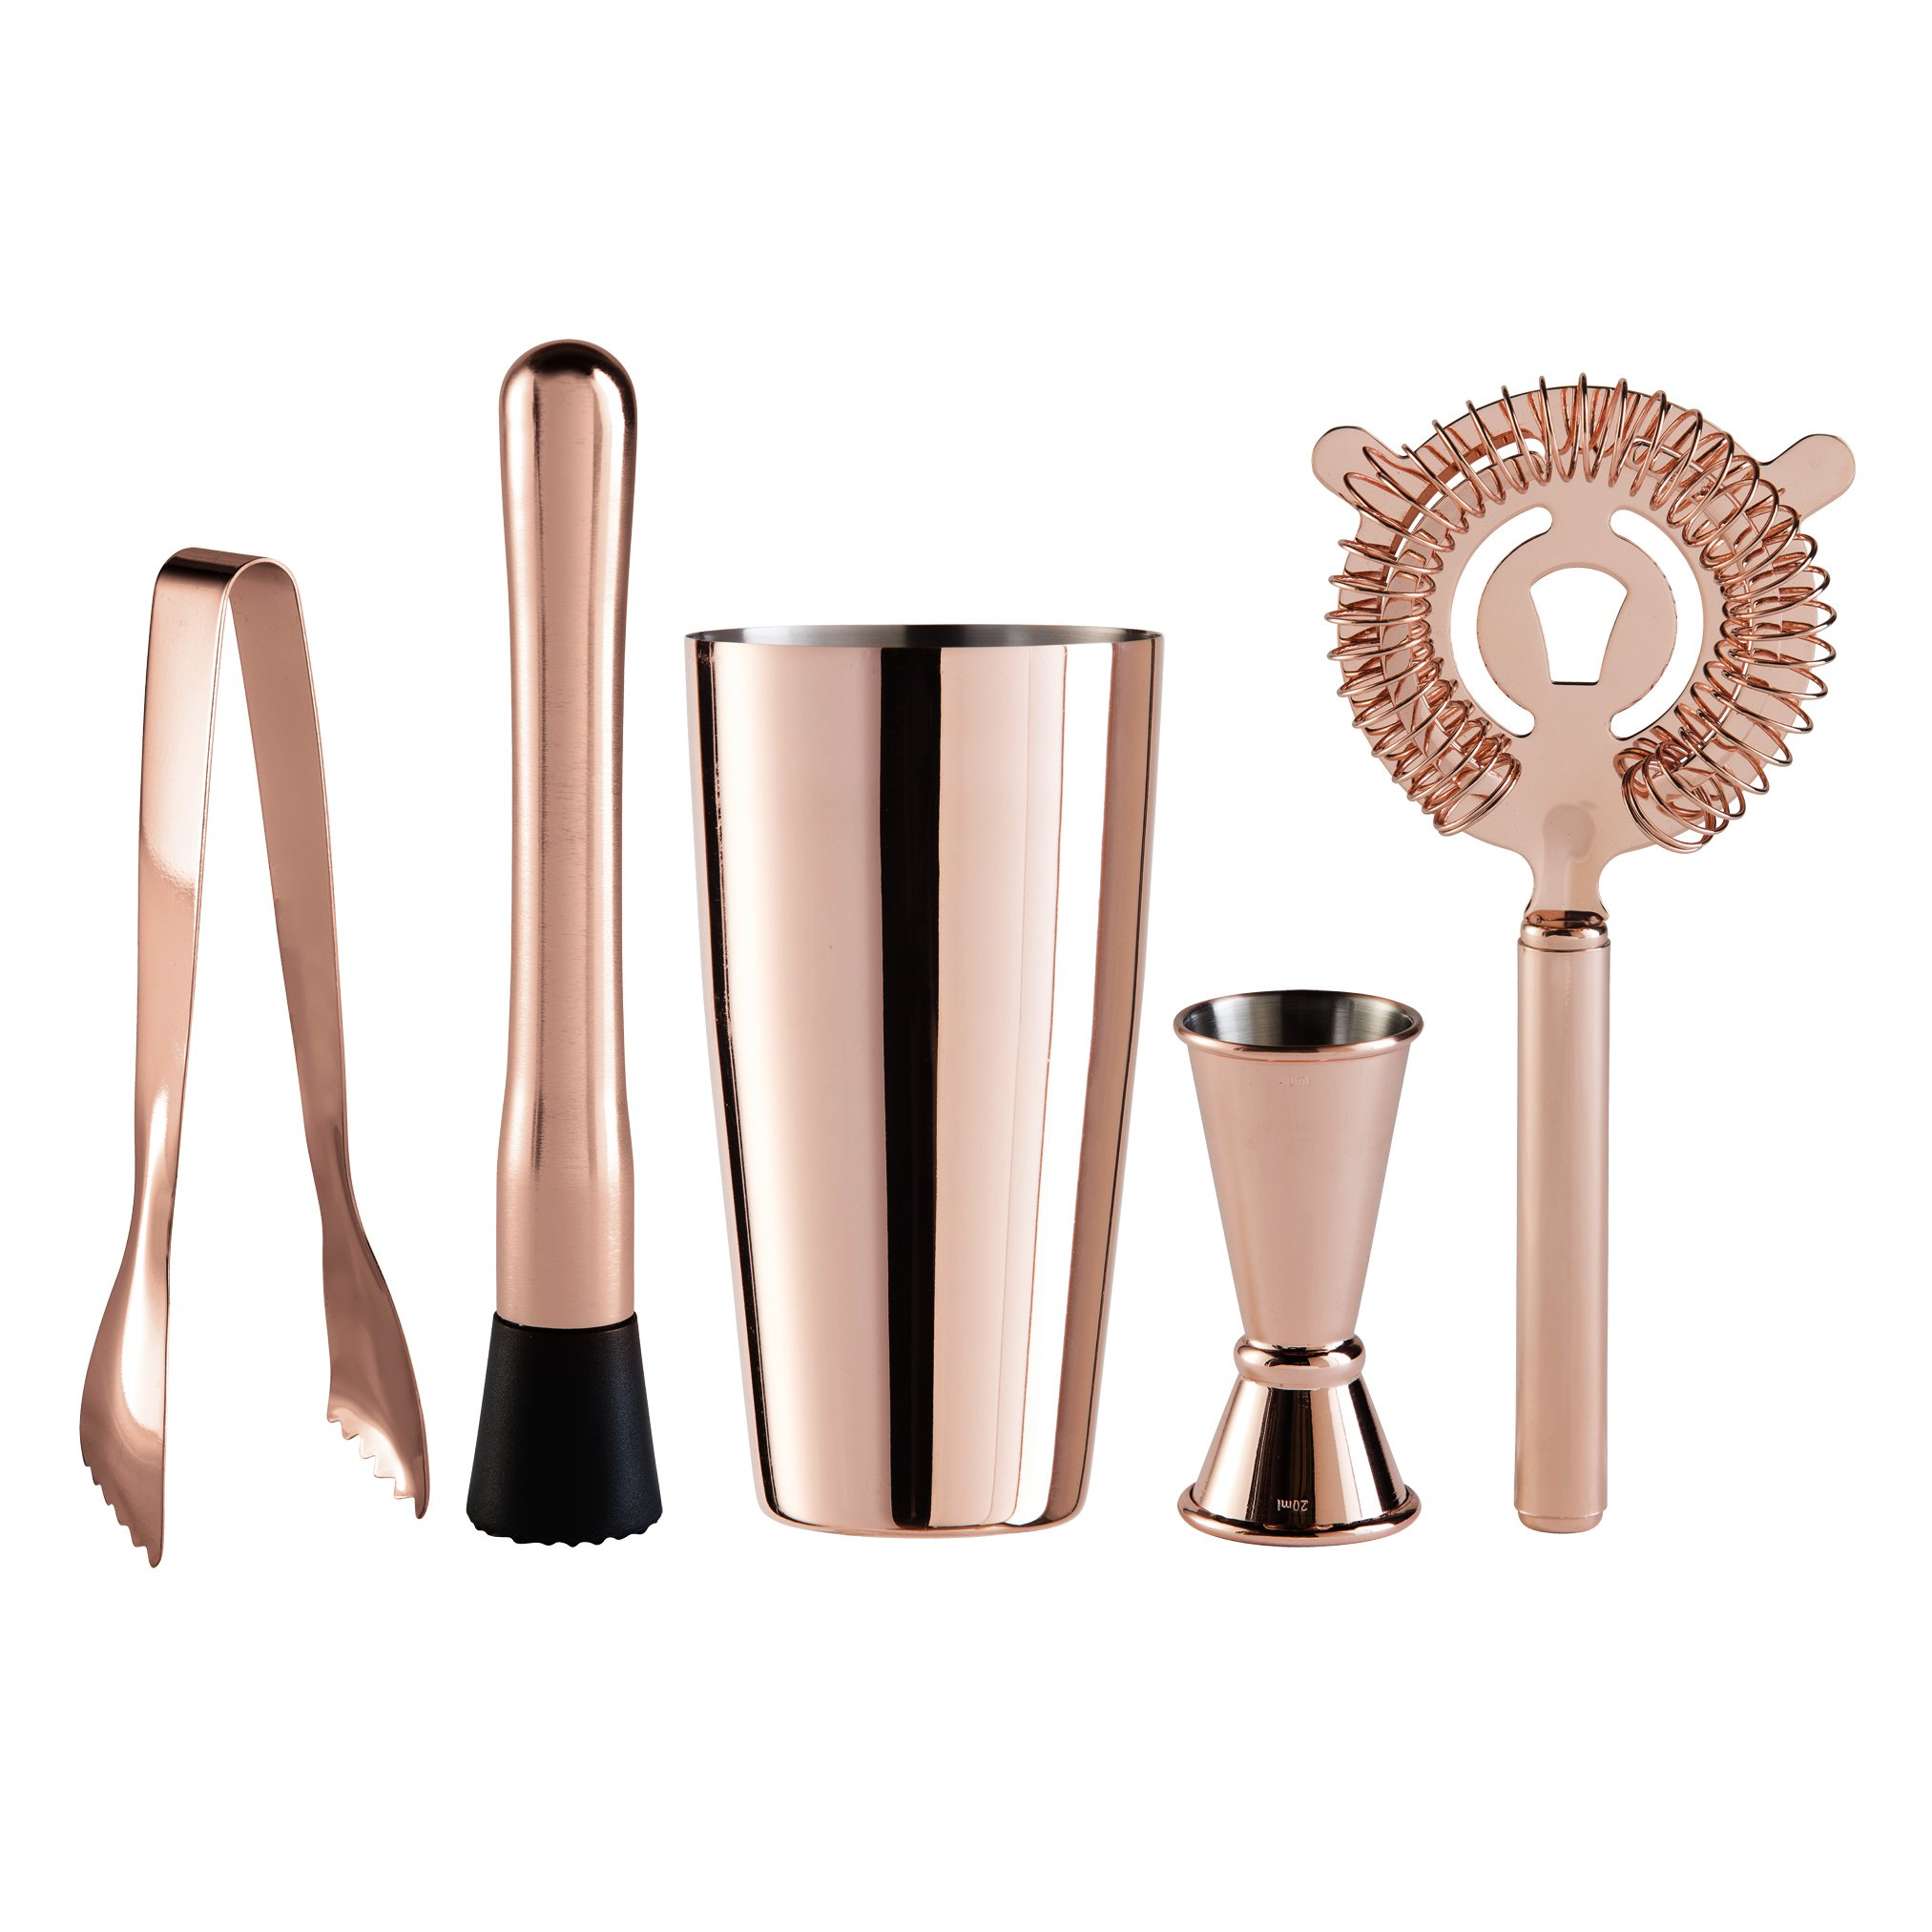 Oggi 5 Piece Stainless Steel Bartender Accessories with Plating Set-Includes Muddler, Glass Cocktail Shaker, Double Jigger, Ice Strainer and Tongs, Copper